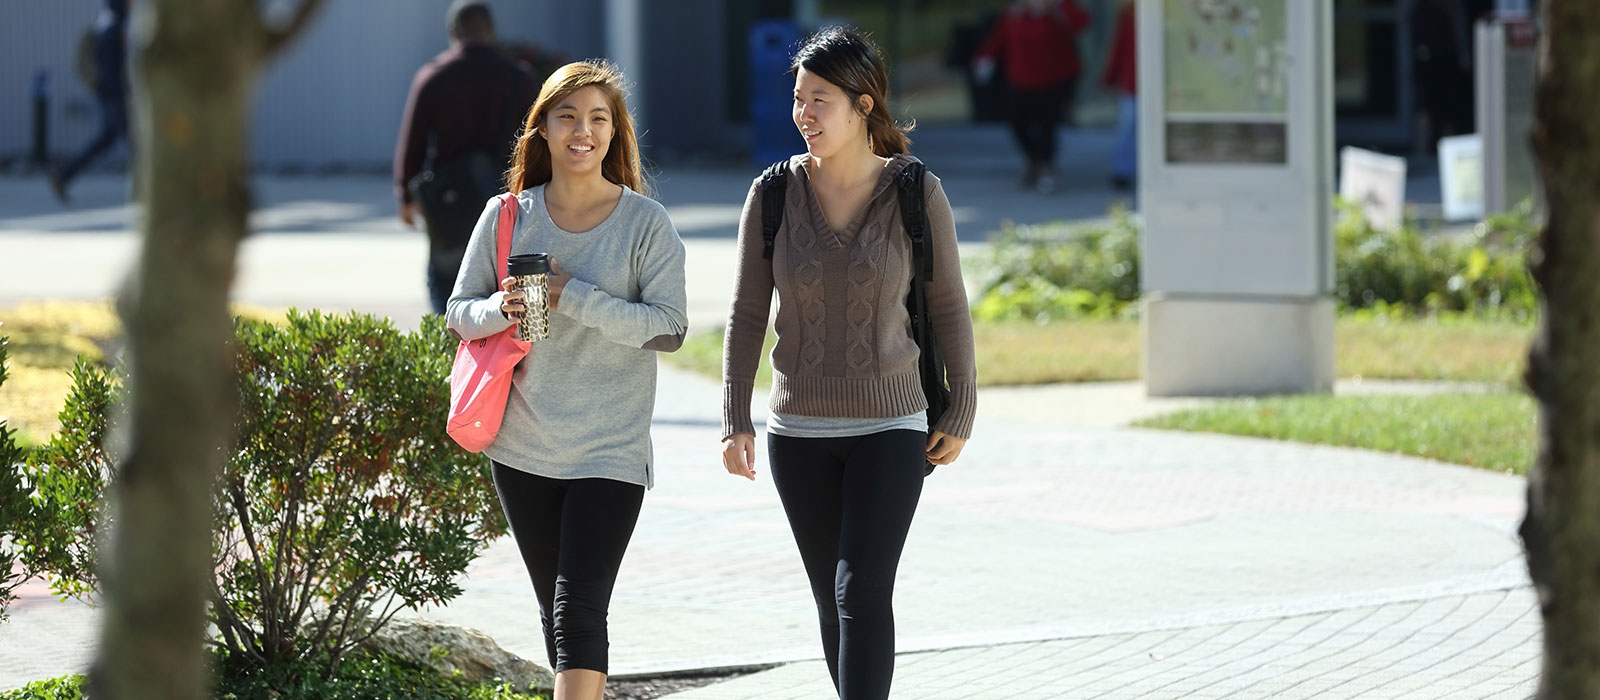 students walking across hcc campus